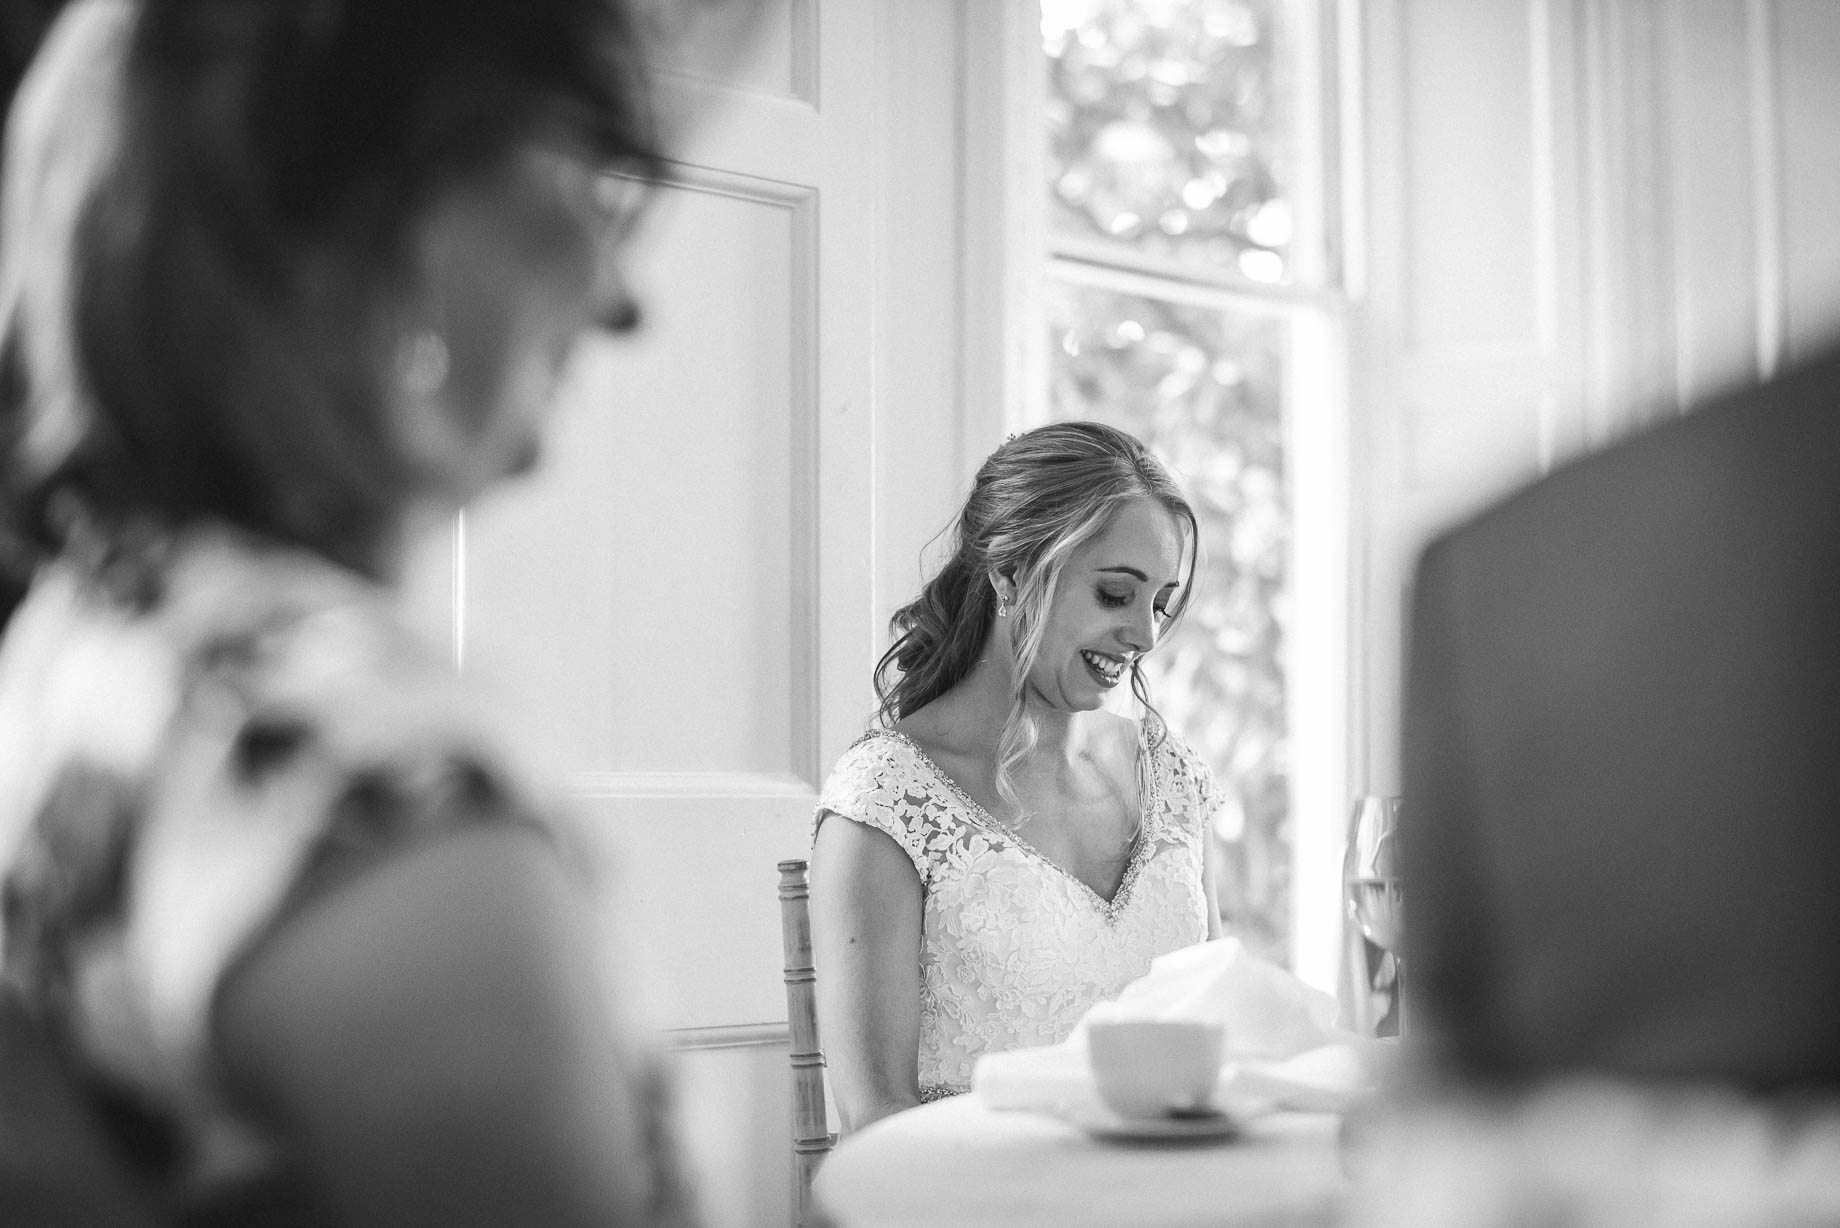 Hampshire wedding photography by Guy Collier - Emily and Tom (114 of 164)